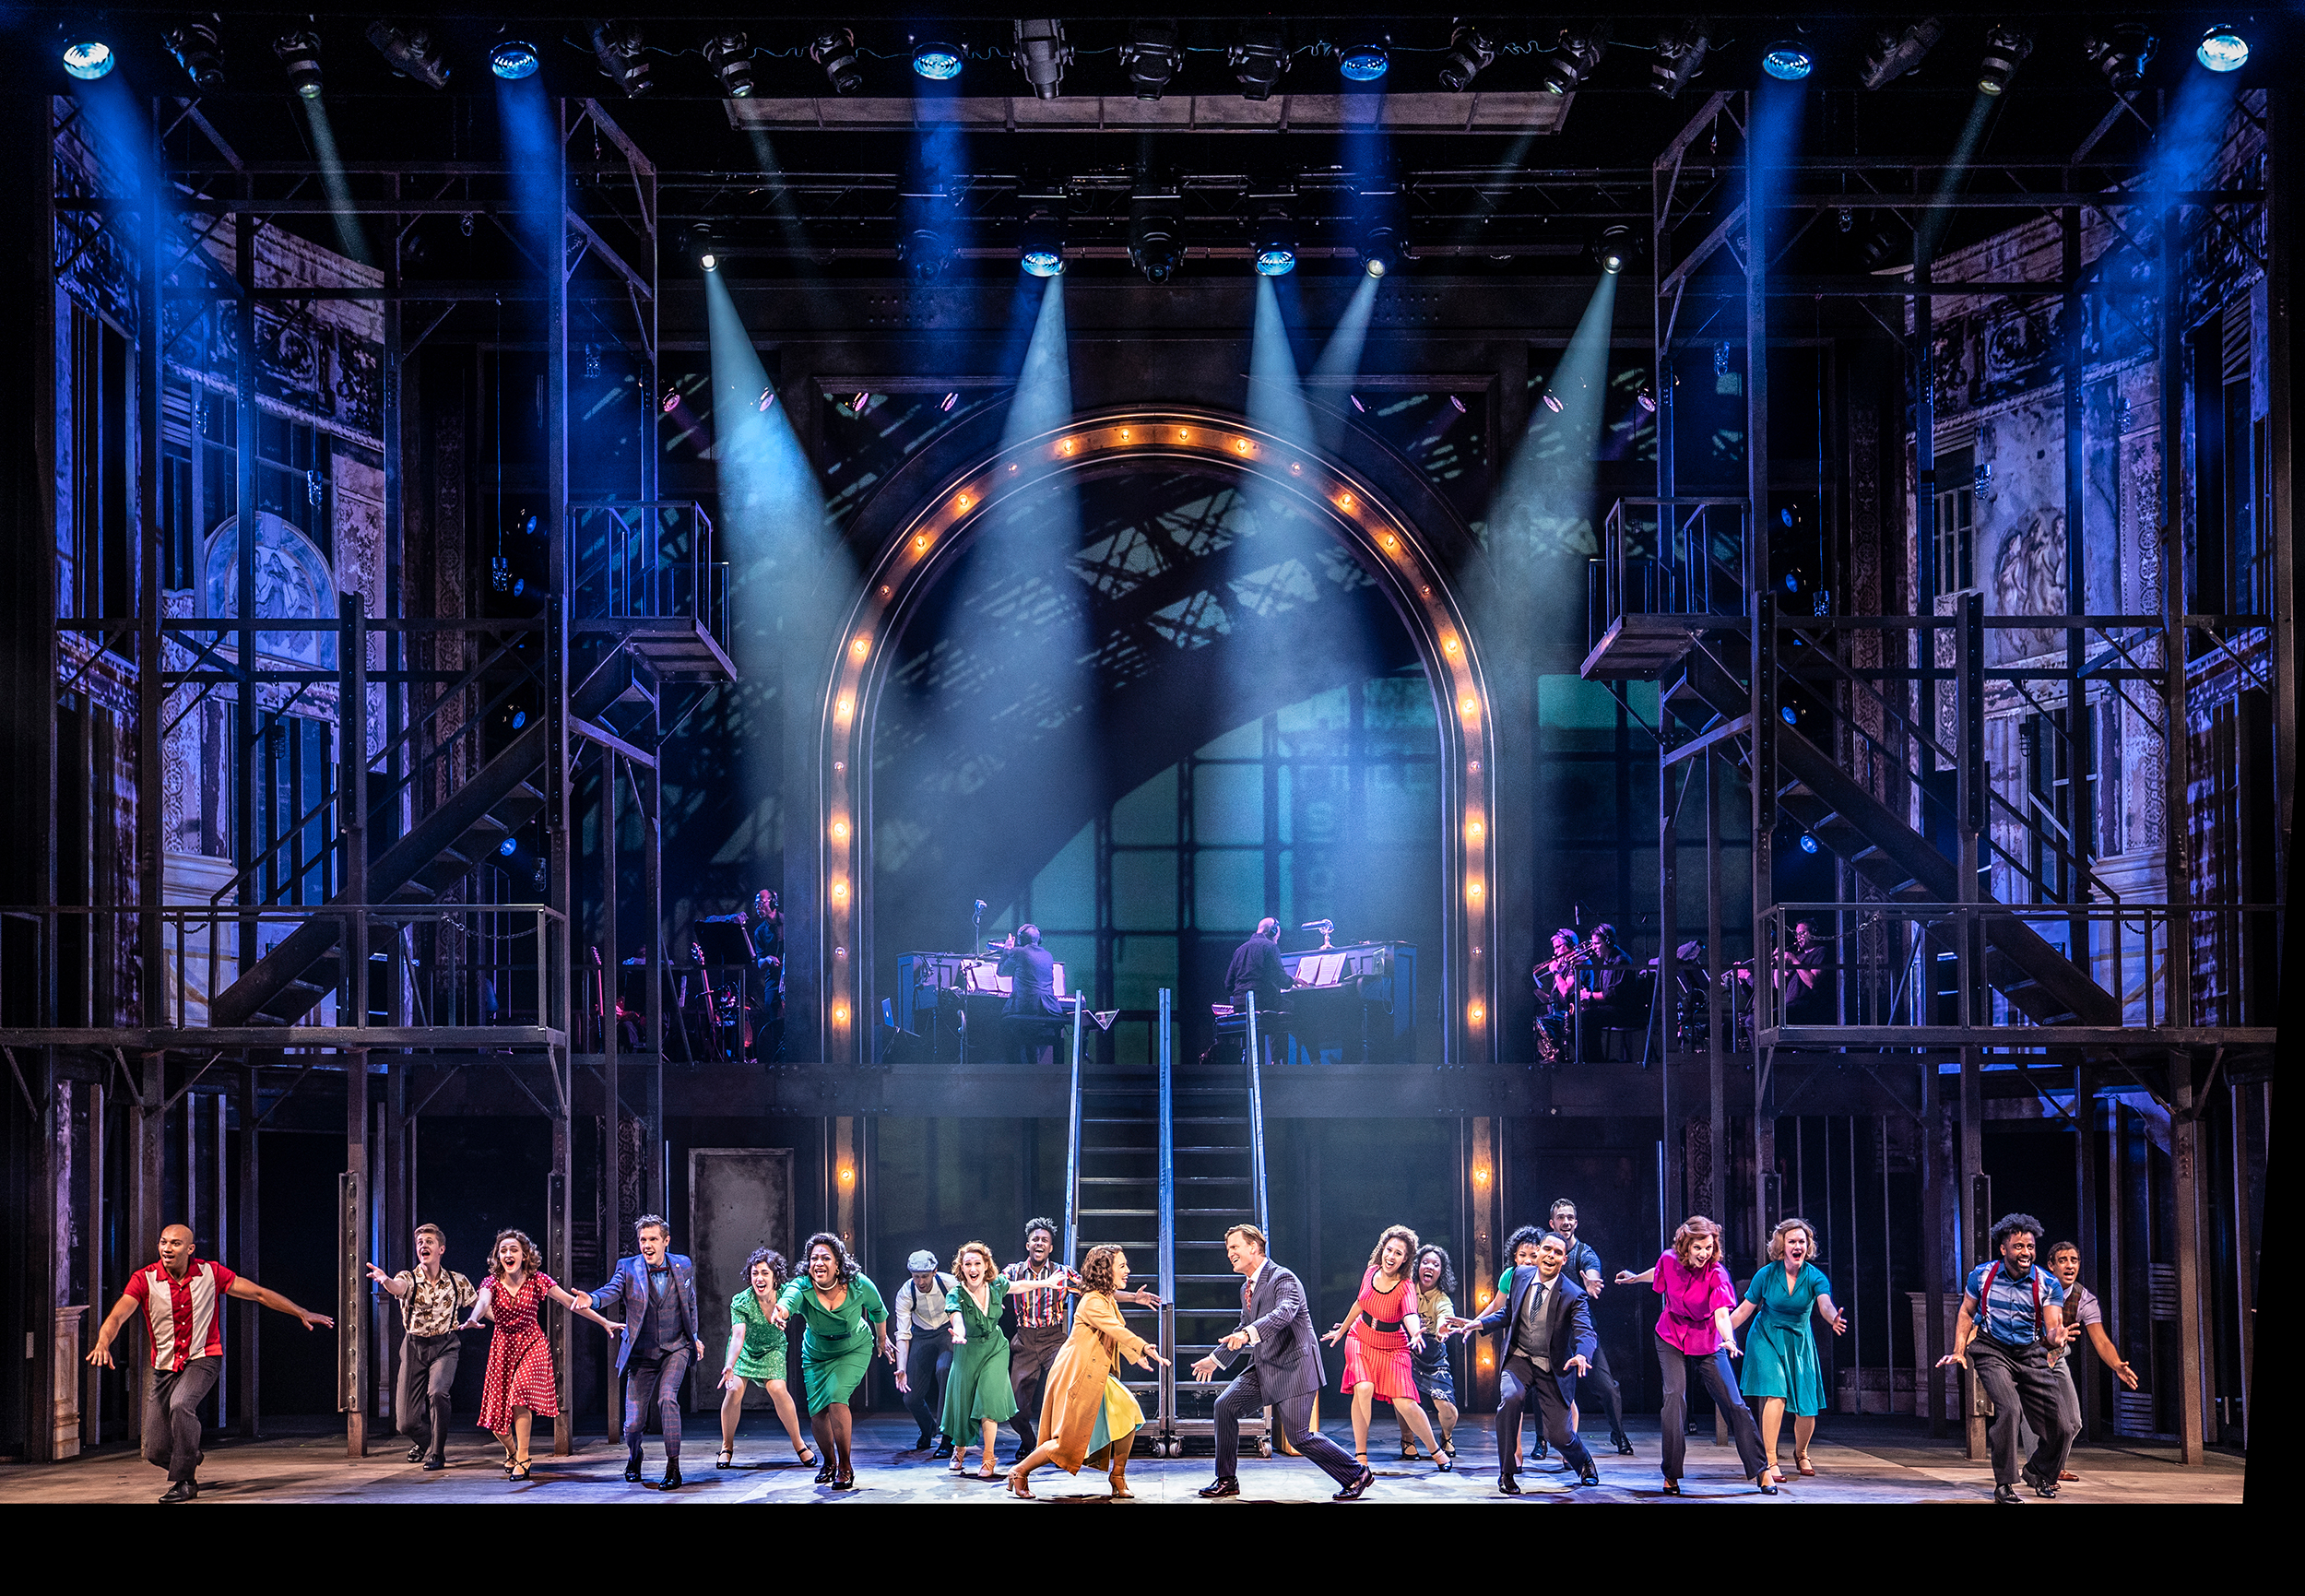 BWW Review: 42ND STREET at Ordway Center For The Performing Arts